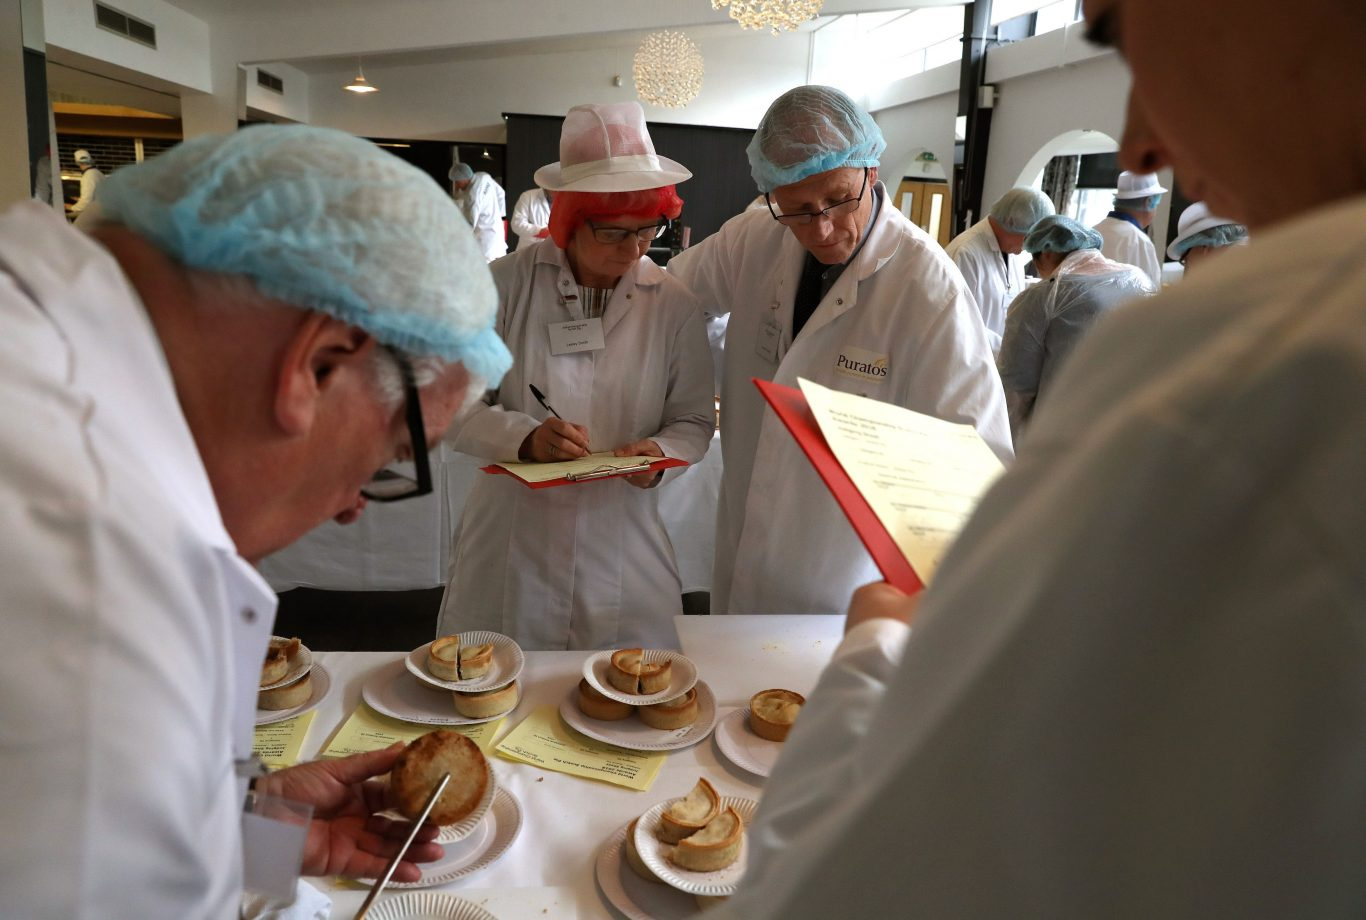 Scotch pie world championships (Andrew Milligan/PA)